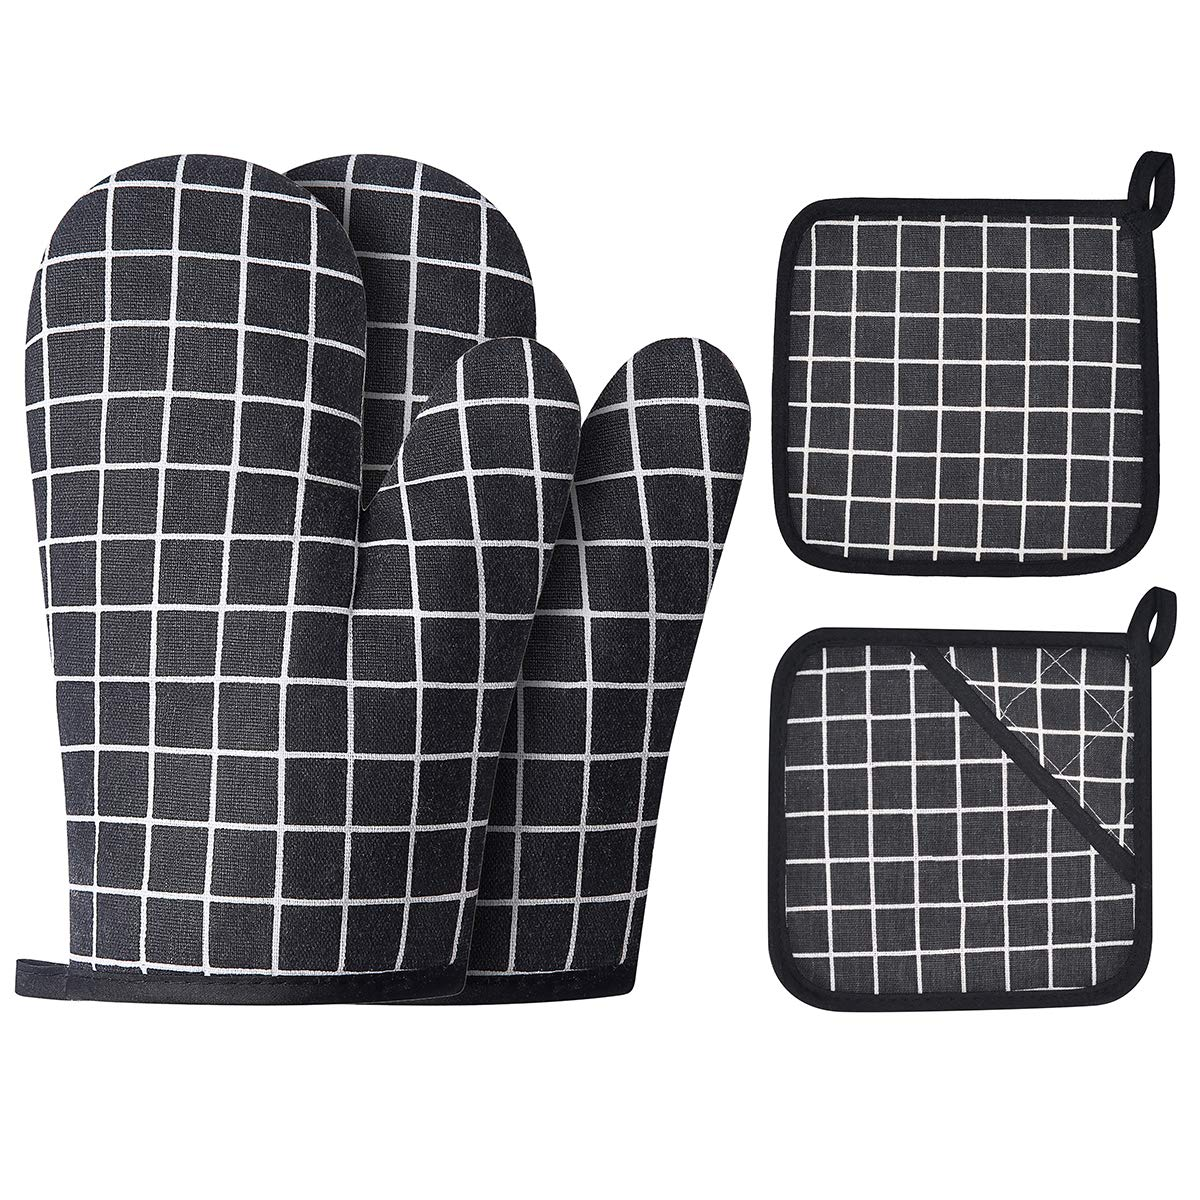 Win Change Oven Mitts and Potholders BBQ Gloves-Oven Mitts and Pot Holders with Recycled Cotton Infill Silicone Non-Slip Cooking Gloves for Cooking Baking Grilling (4-Piece Set,Black)